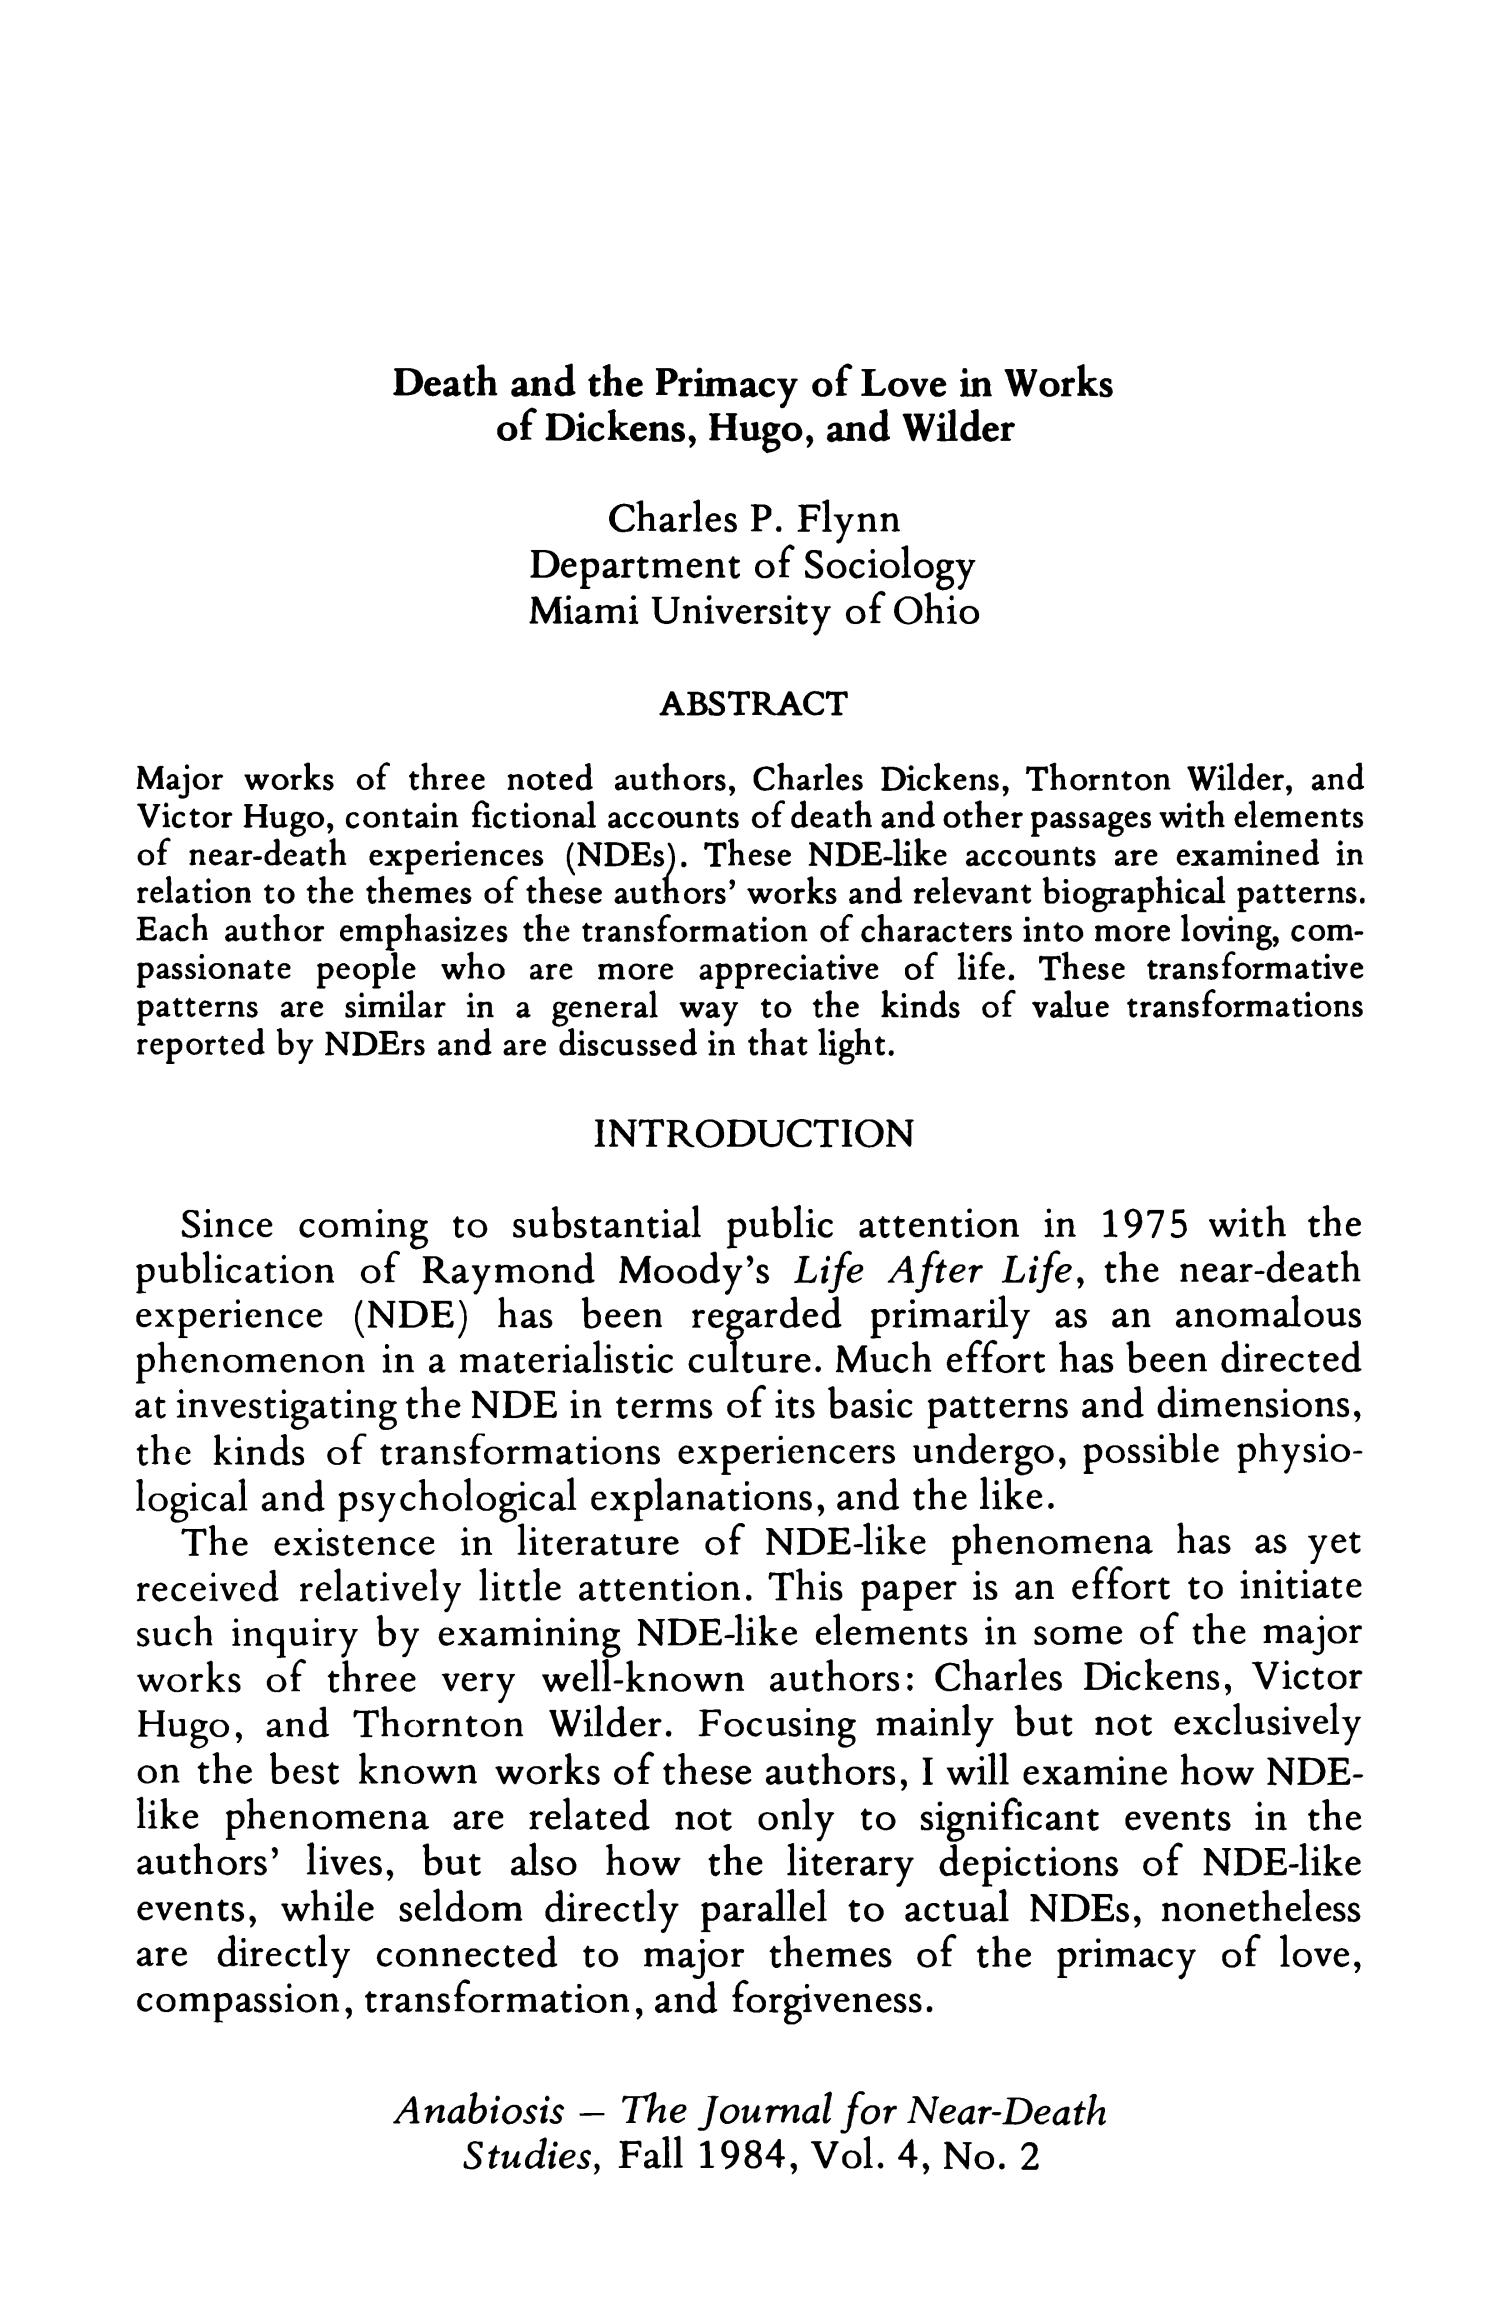 Death and the Primacy of Love in Works of Dickens, Hugo, and Wilder                                                                                                      125